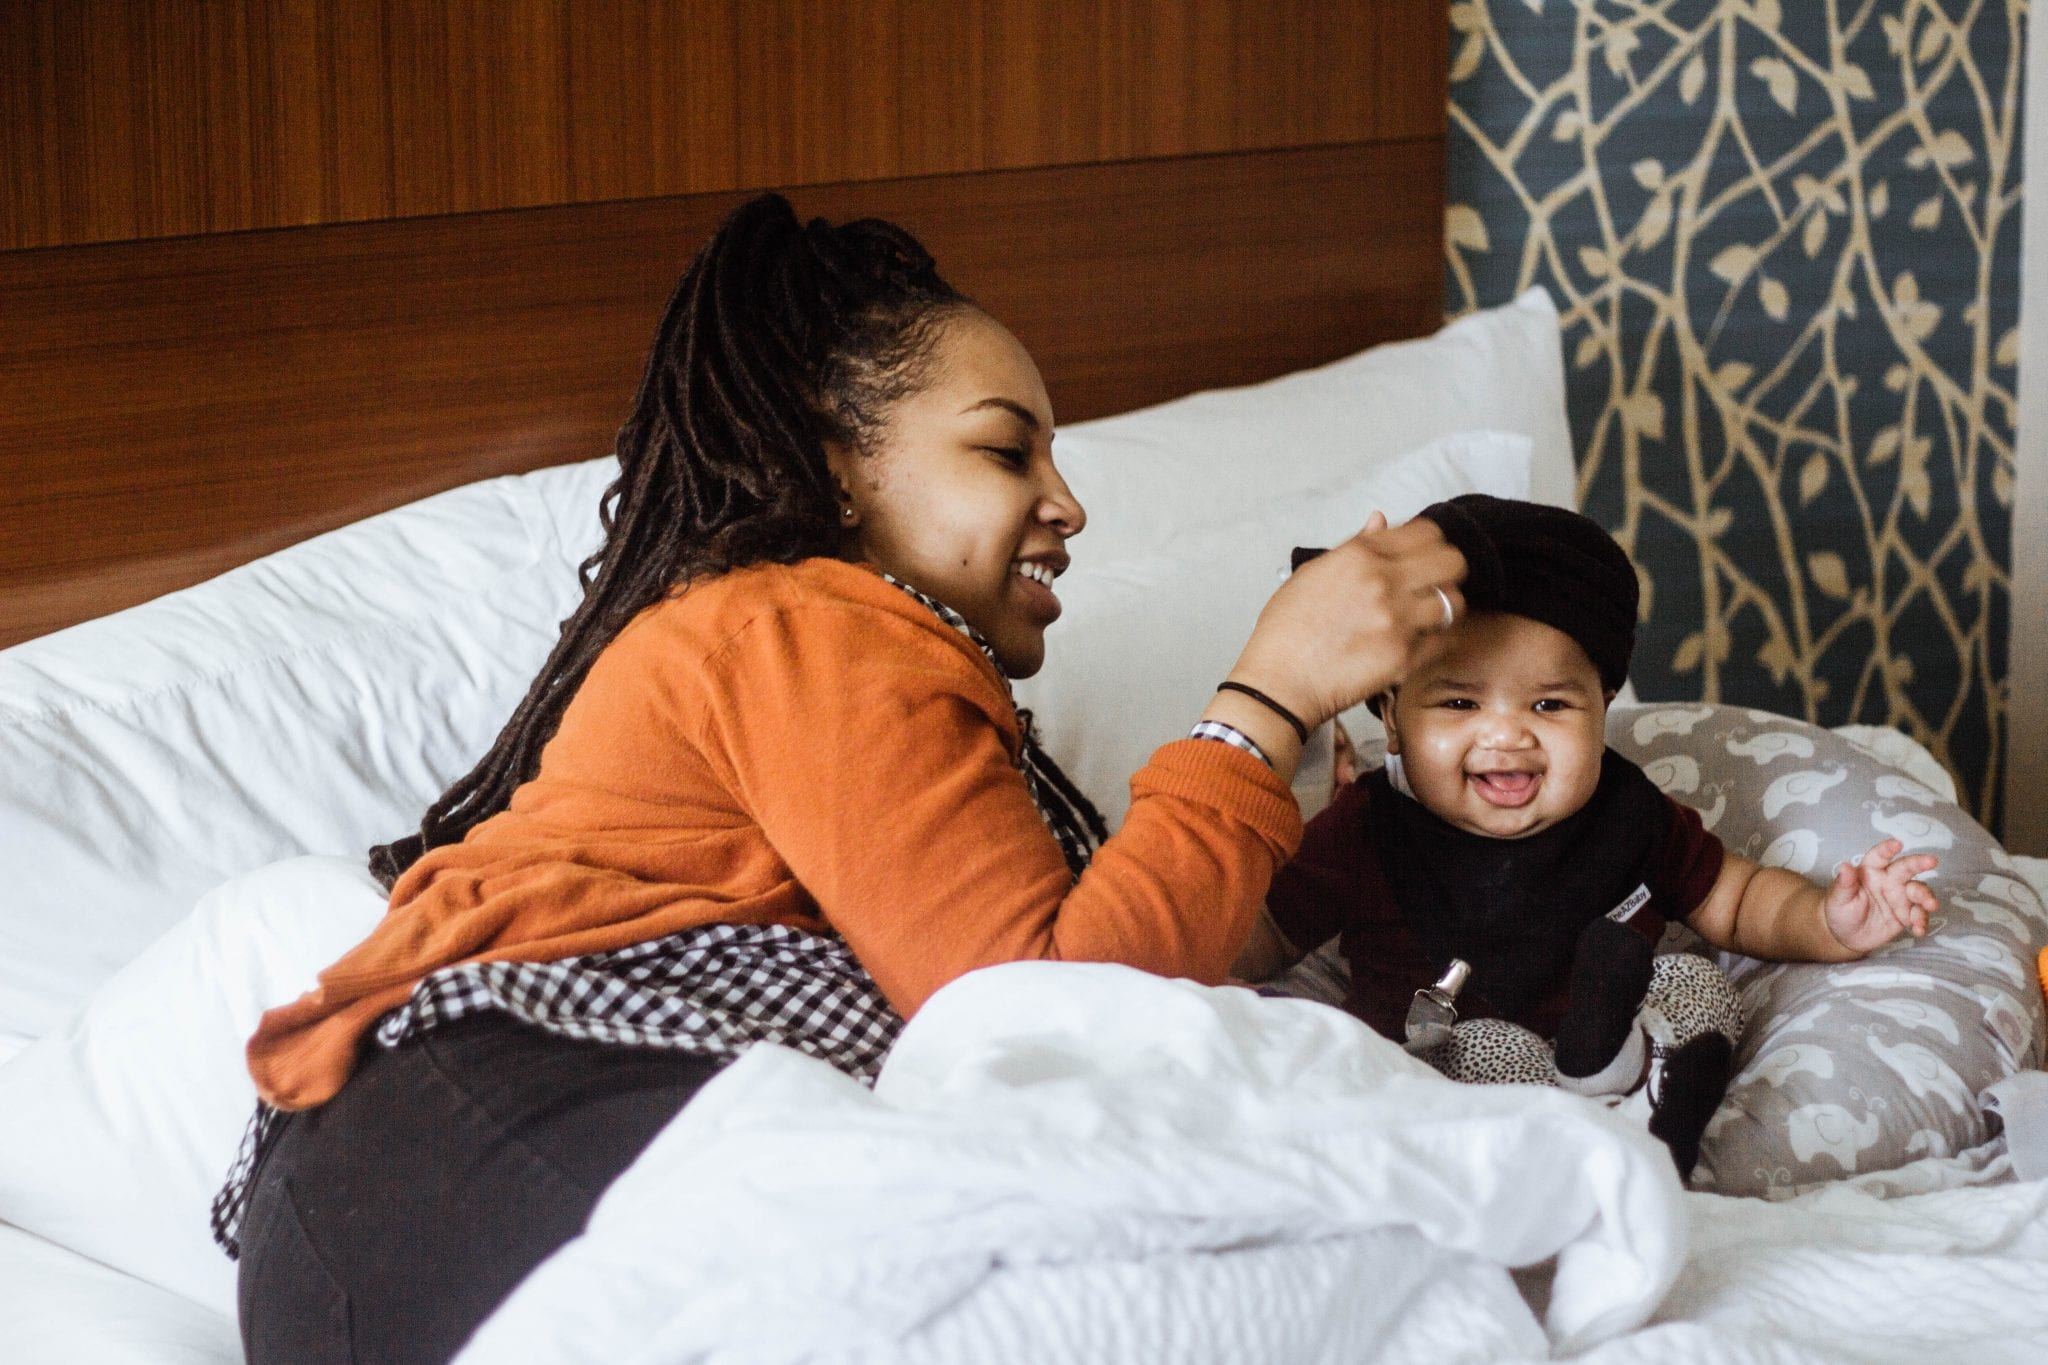 Black Mother and Her Baby Smiling With Mama fixing the baby's hat while sitting in hotel room